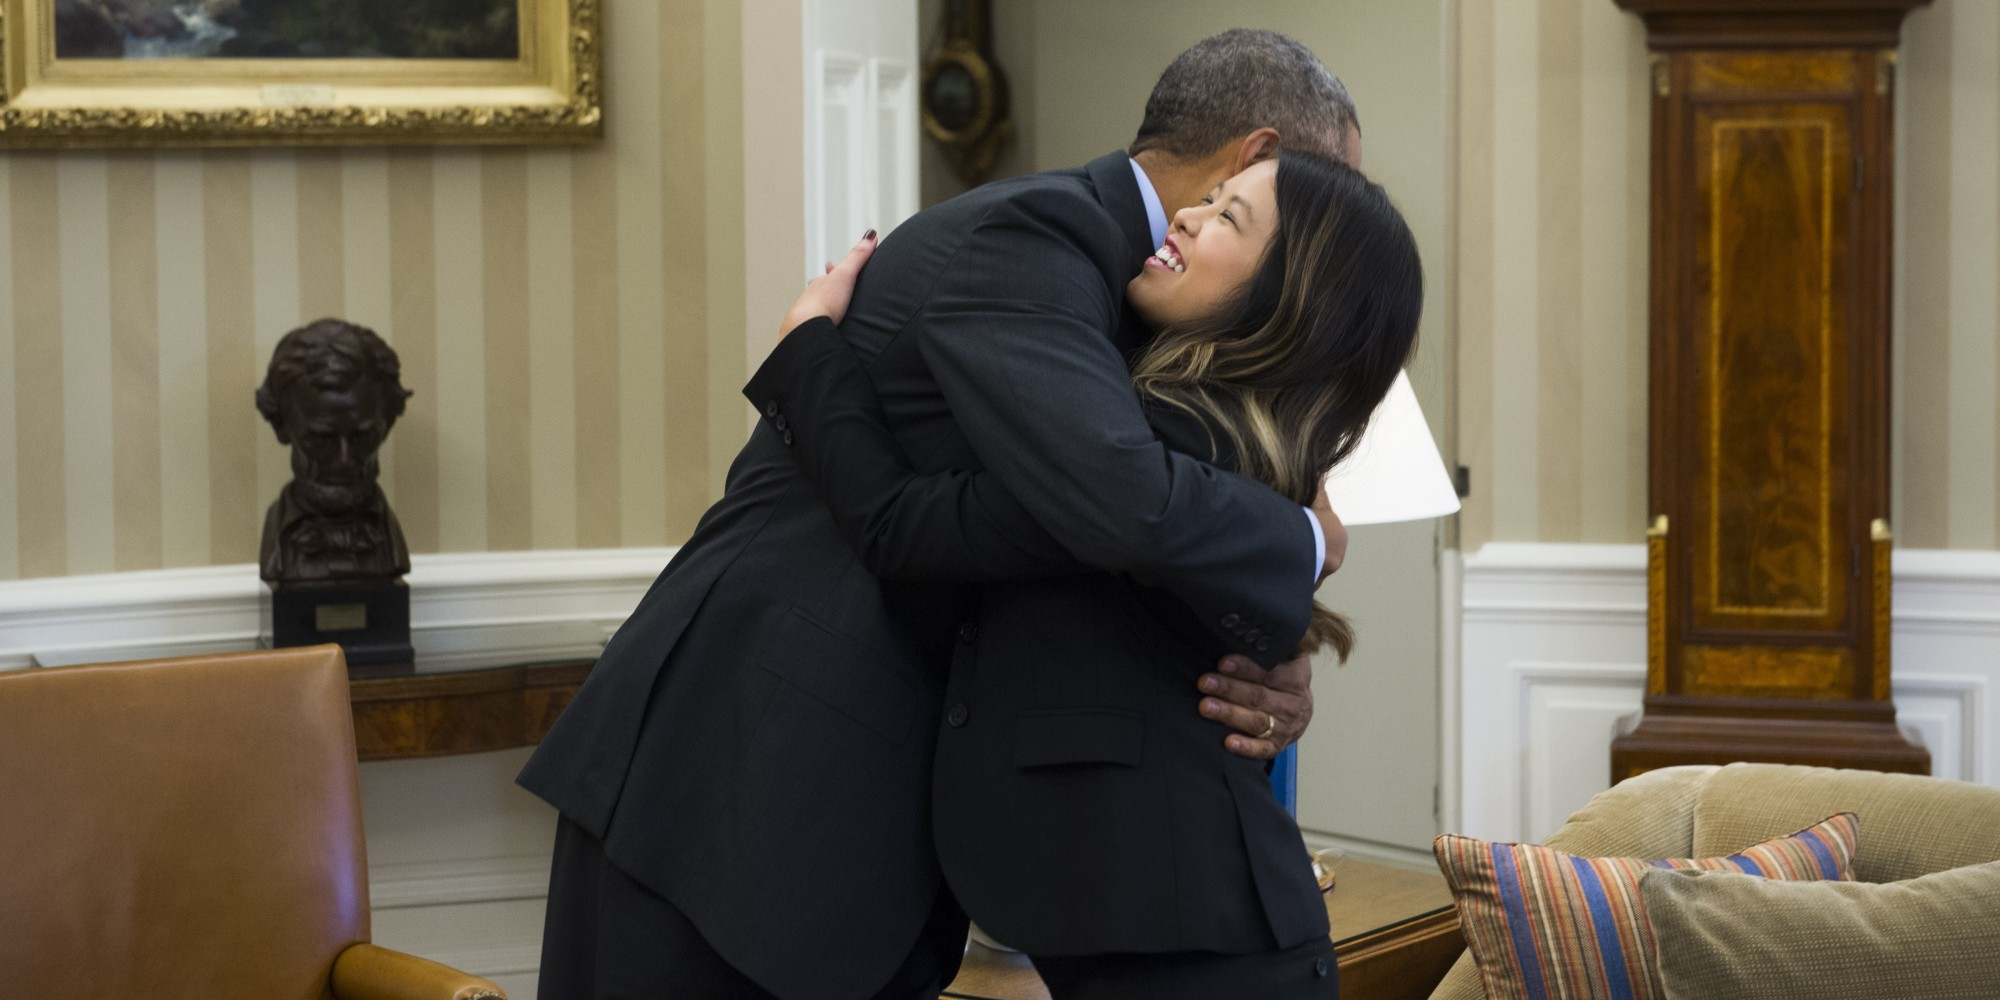 nina pham meet president business